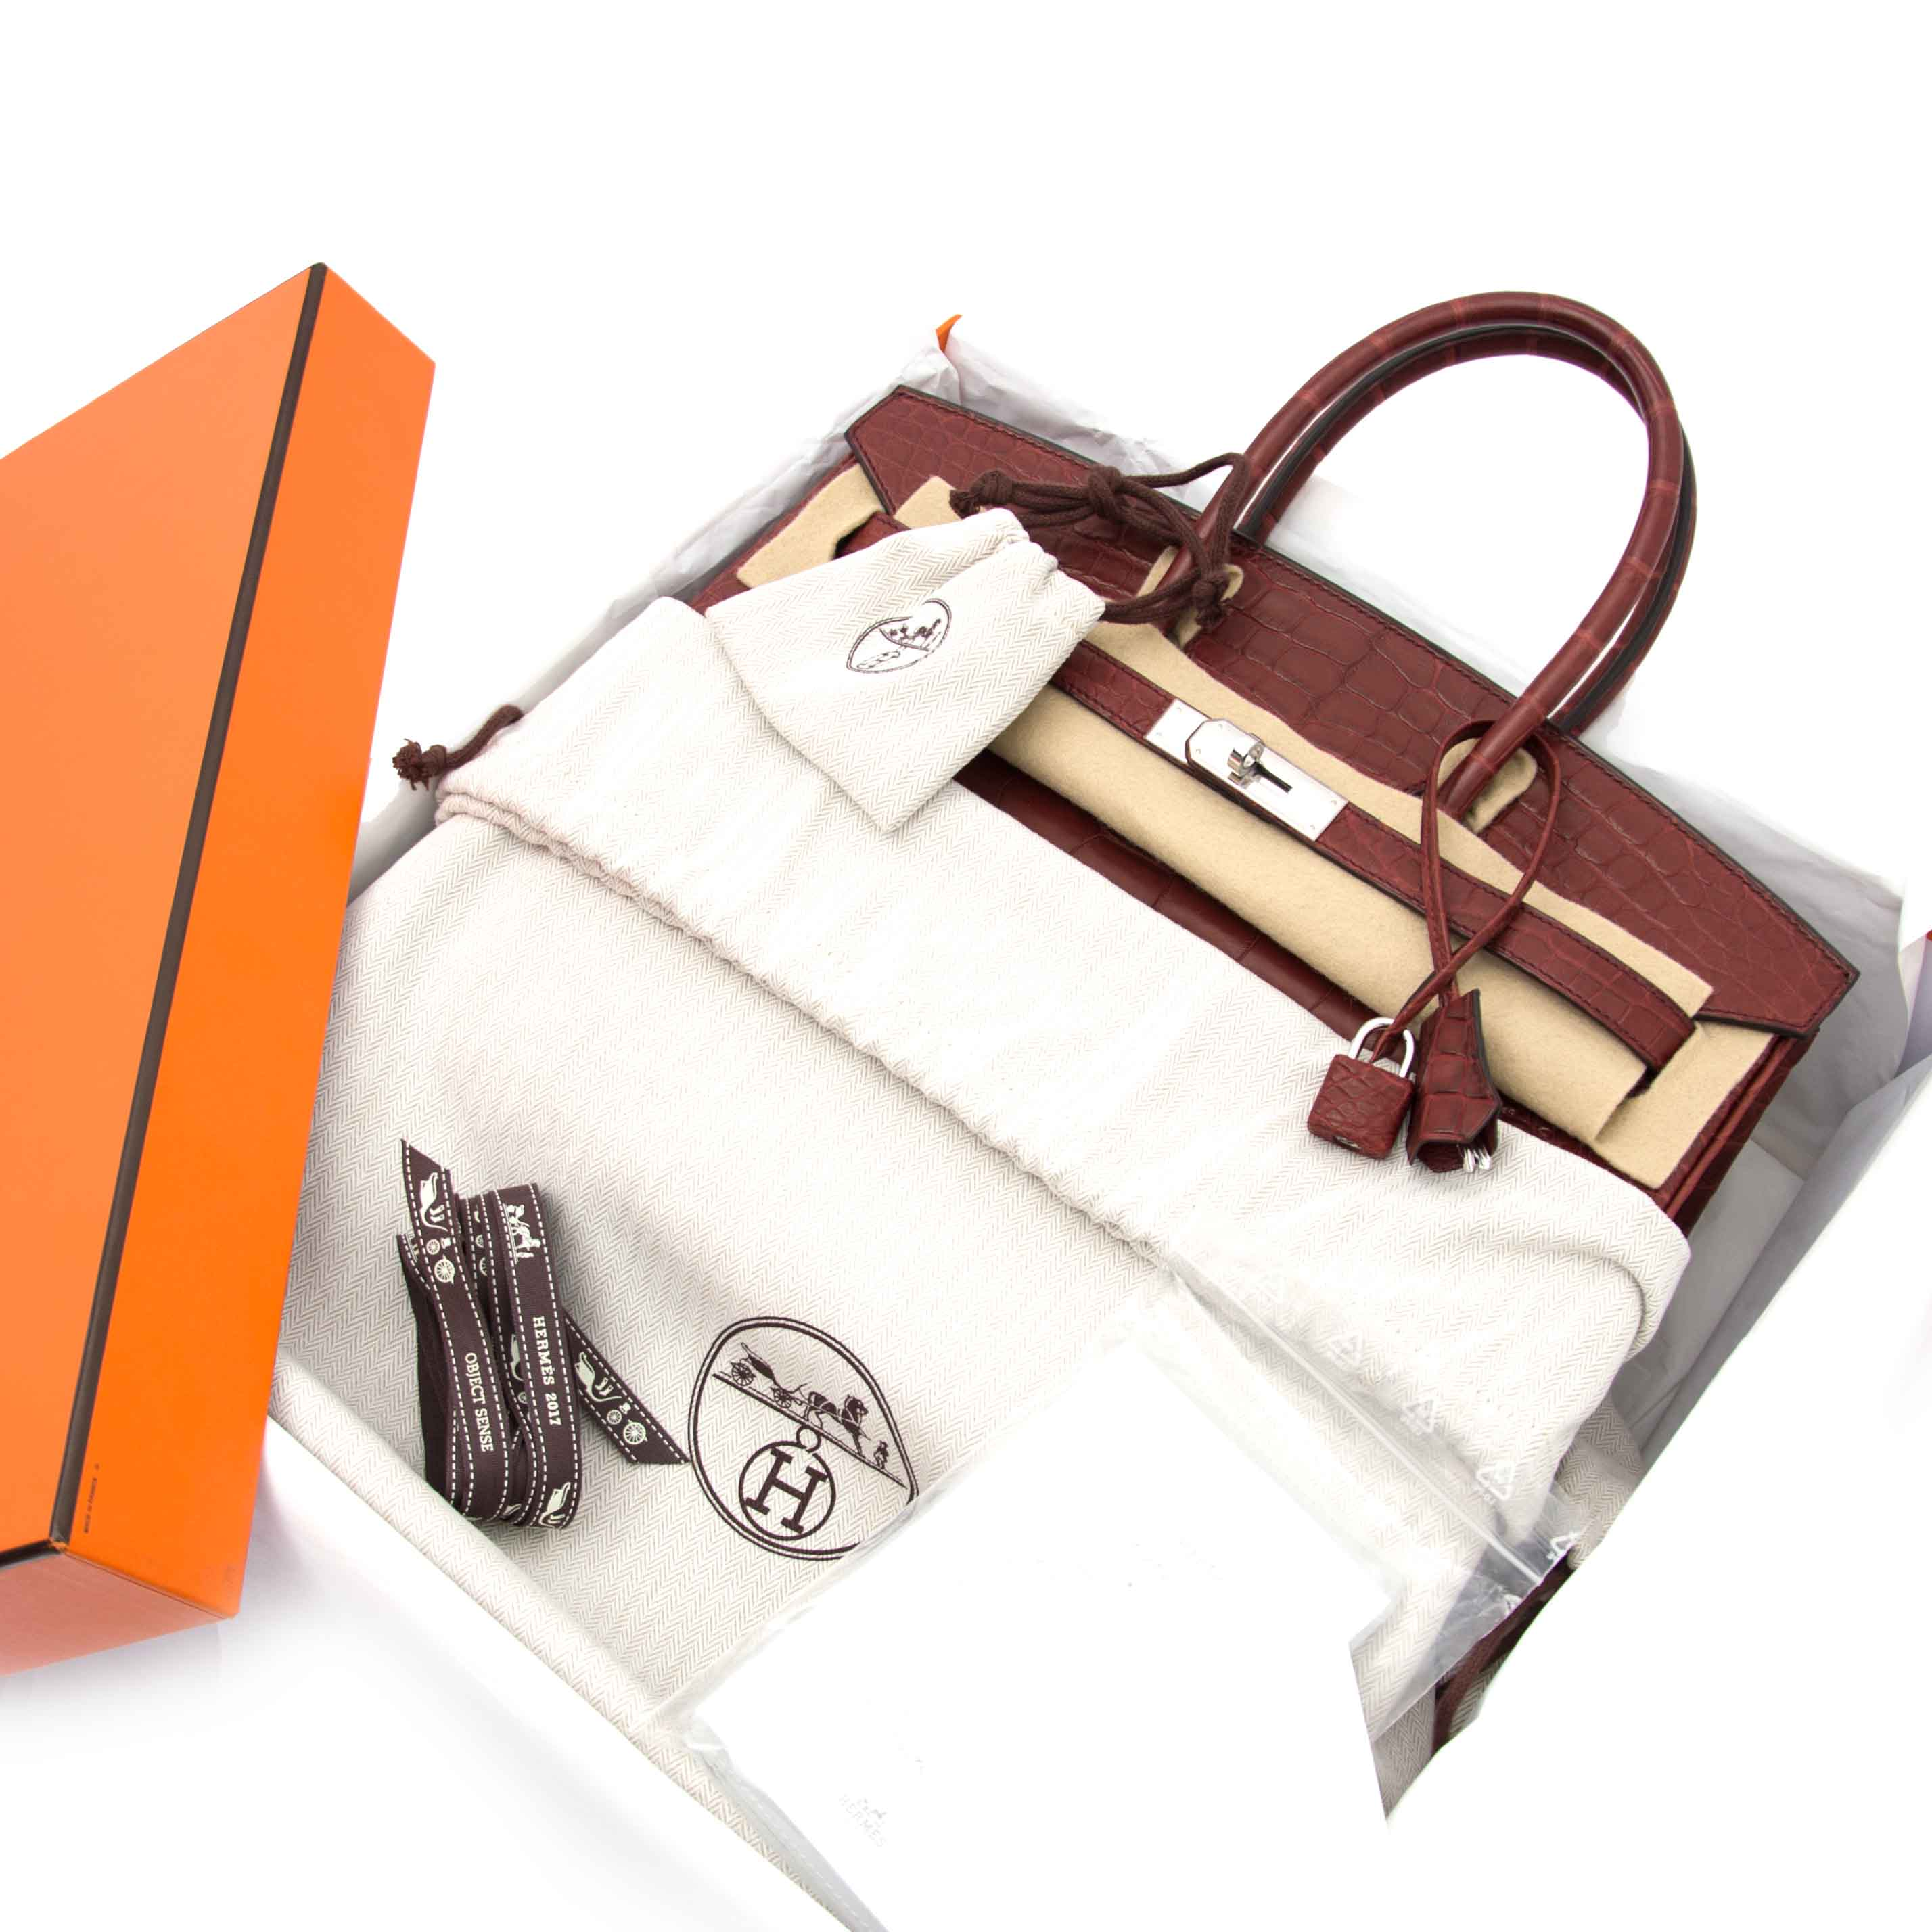 buy and sell your hermes birkin and kelly bags online at labellov.com 100% secure